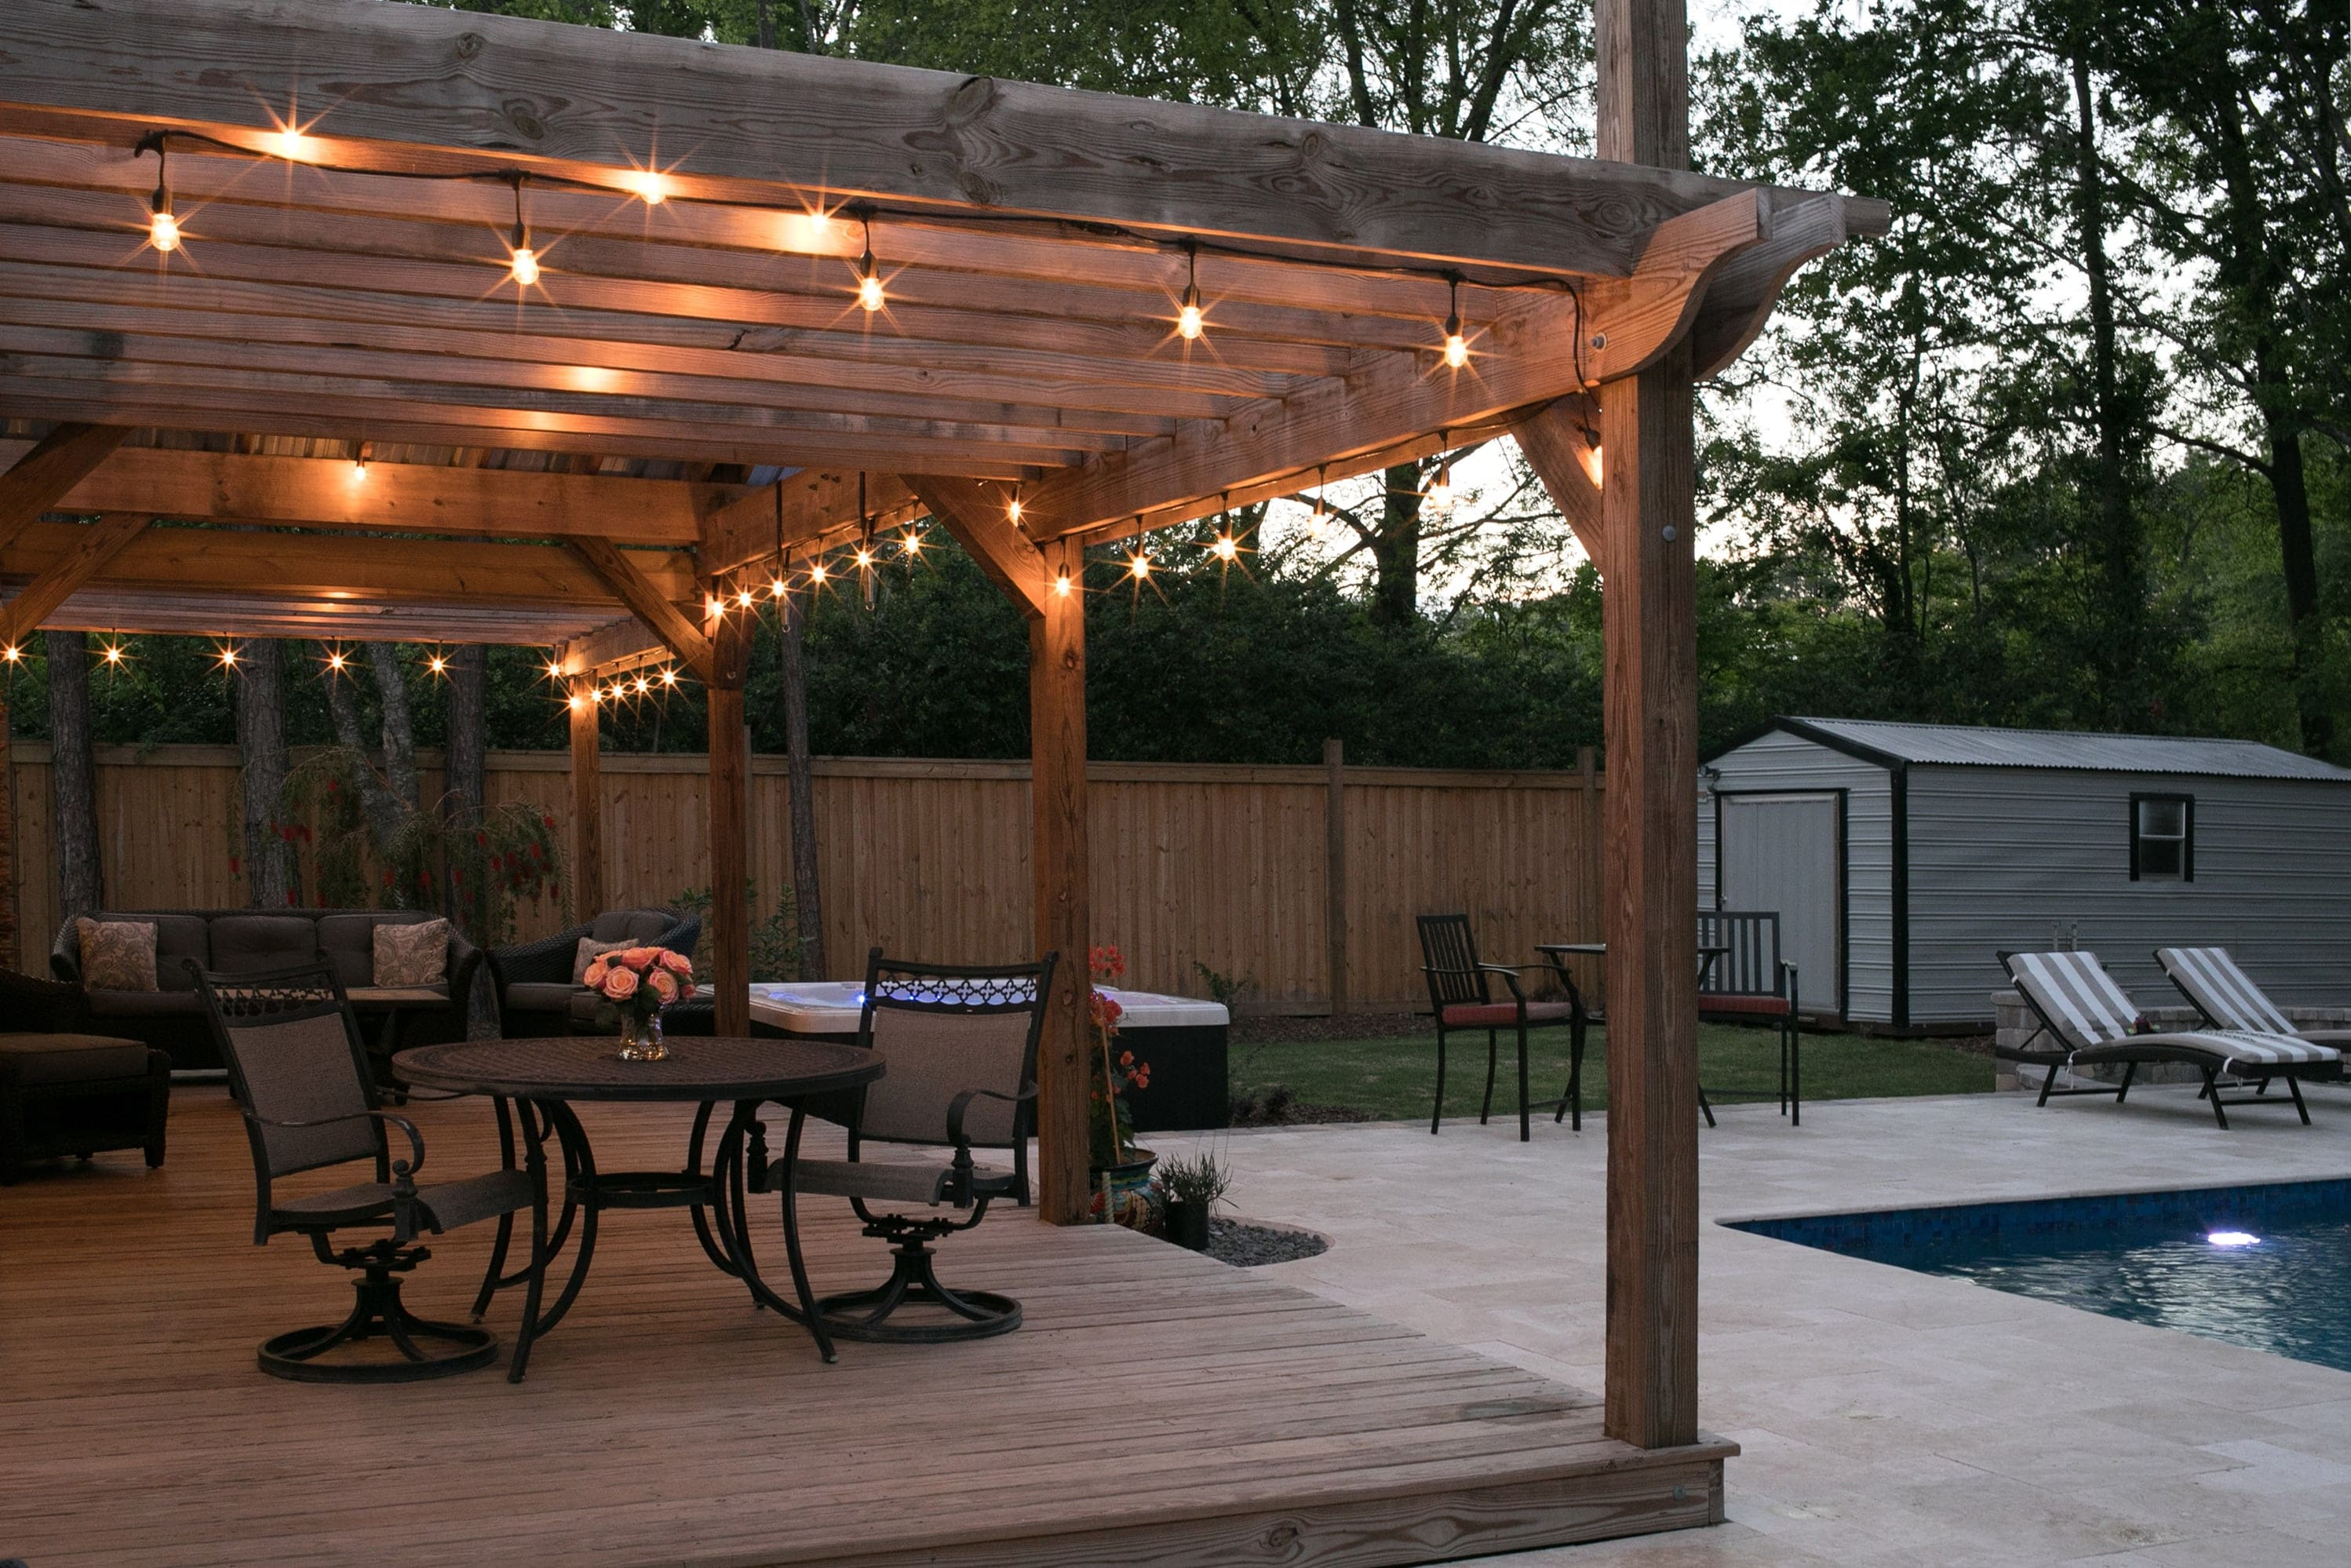 Travertine Paver Pool Deck & Pergola